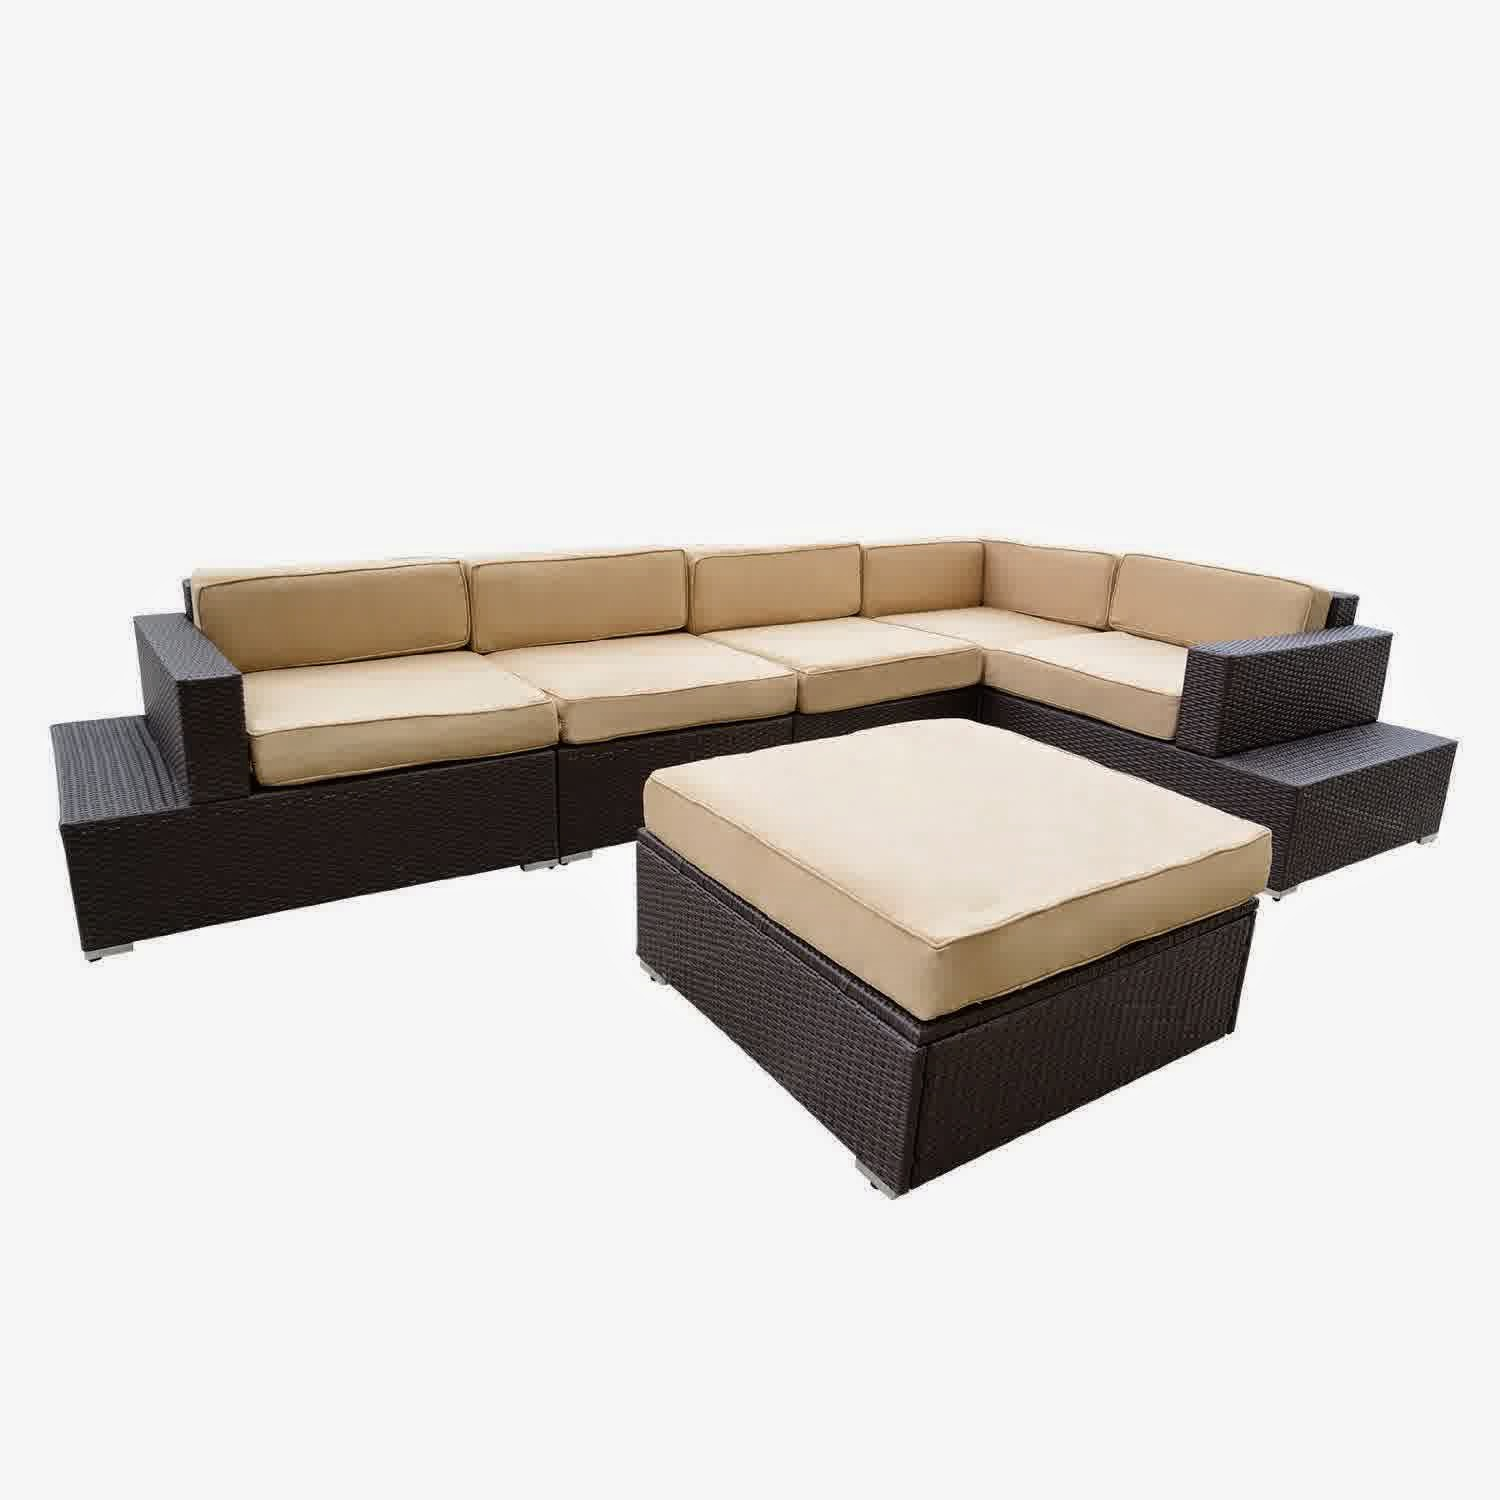 Outdoor Rattan Sofa Patio Loveseats Sale Style Pixelmari